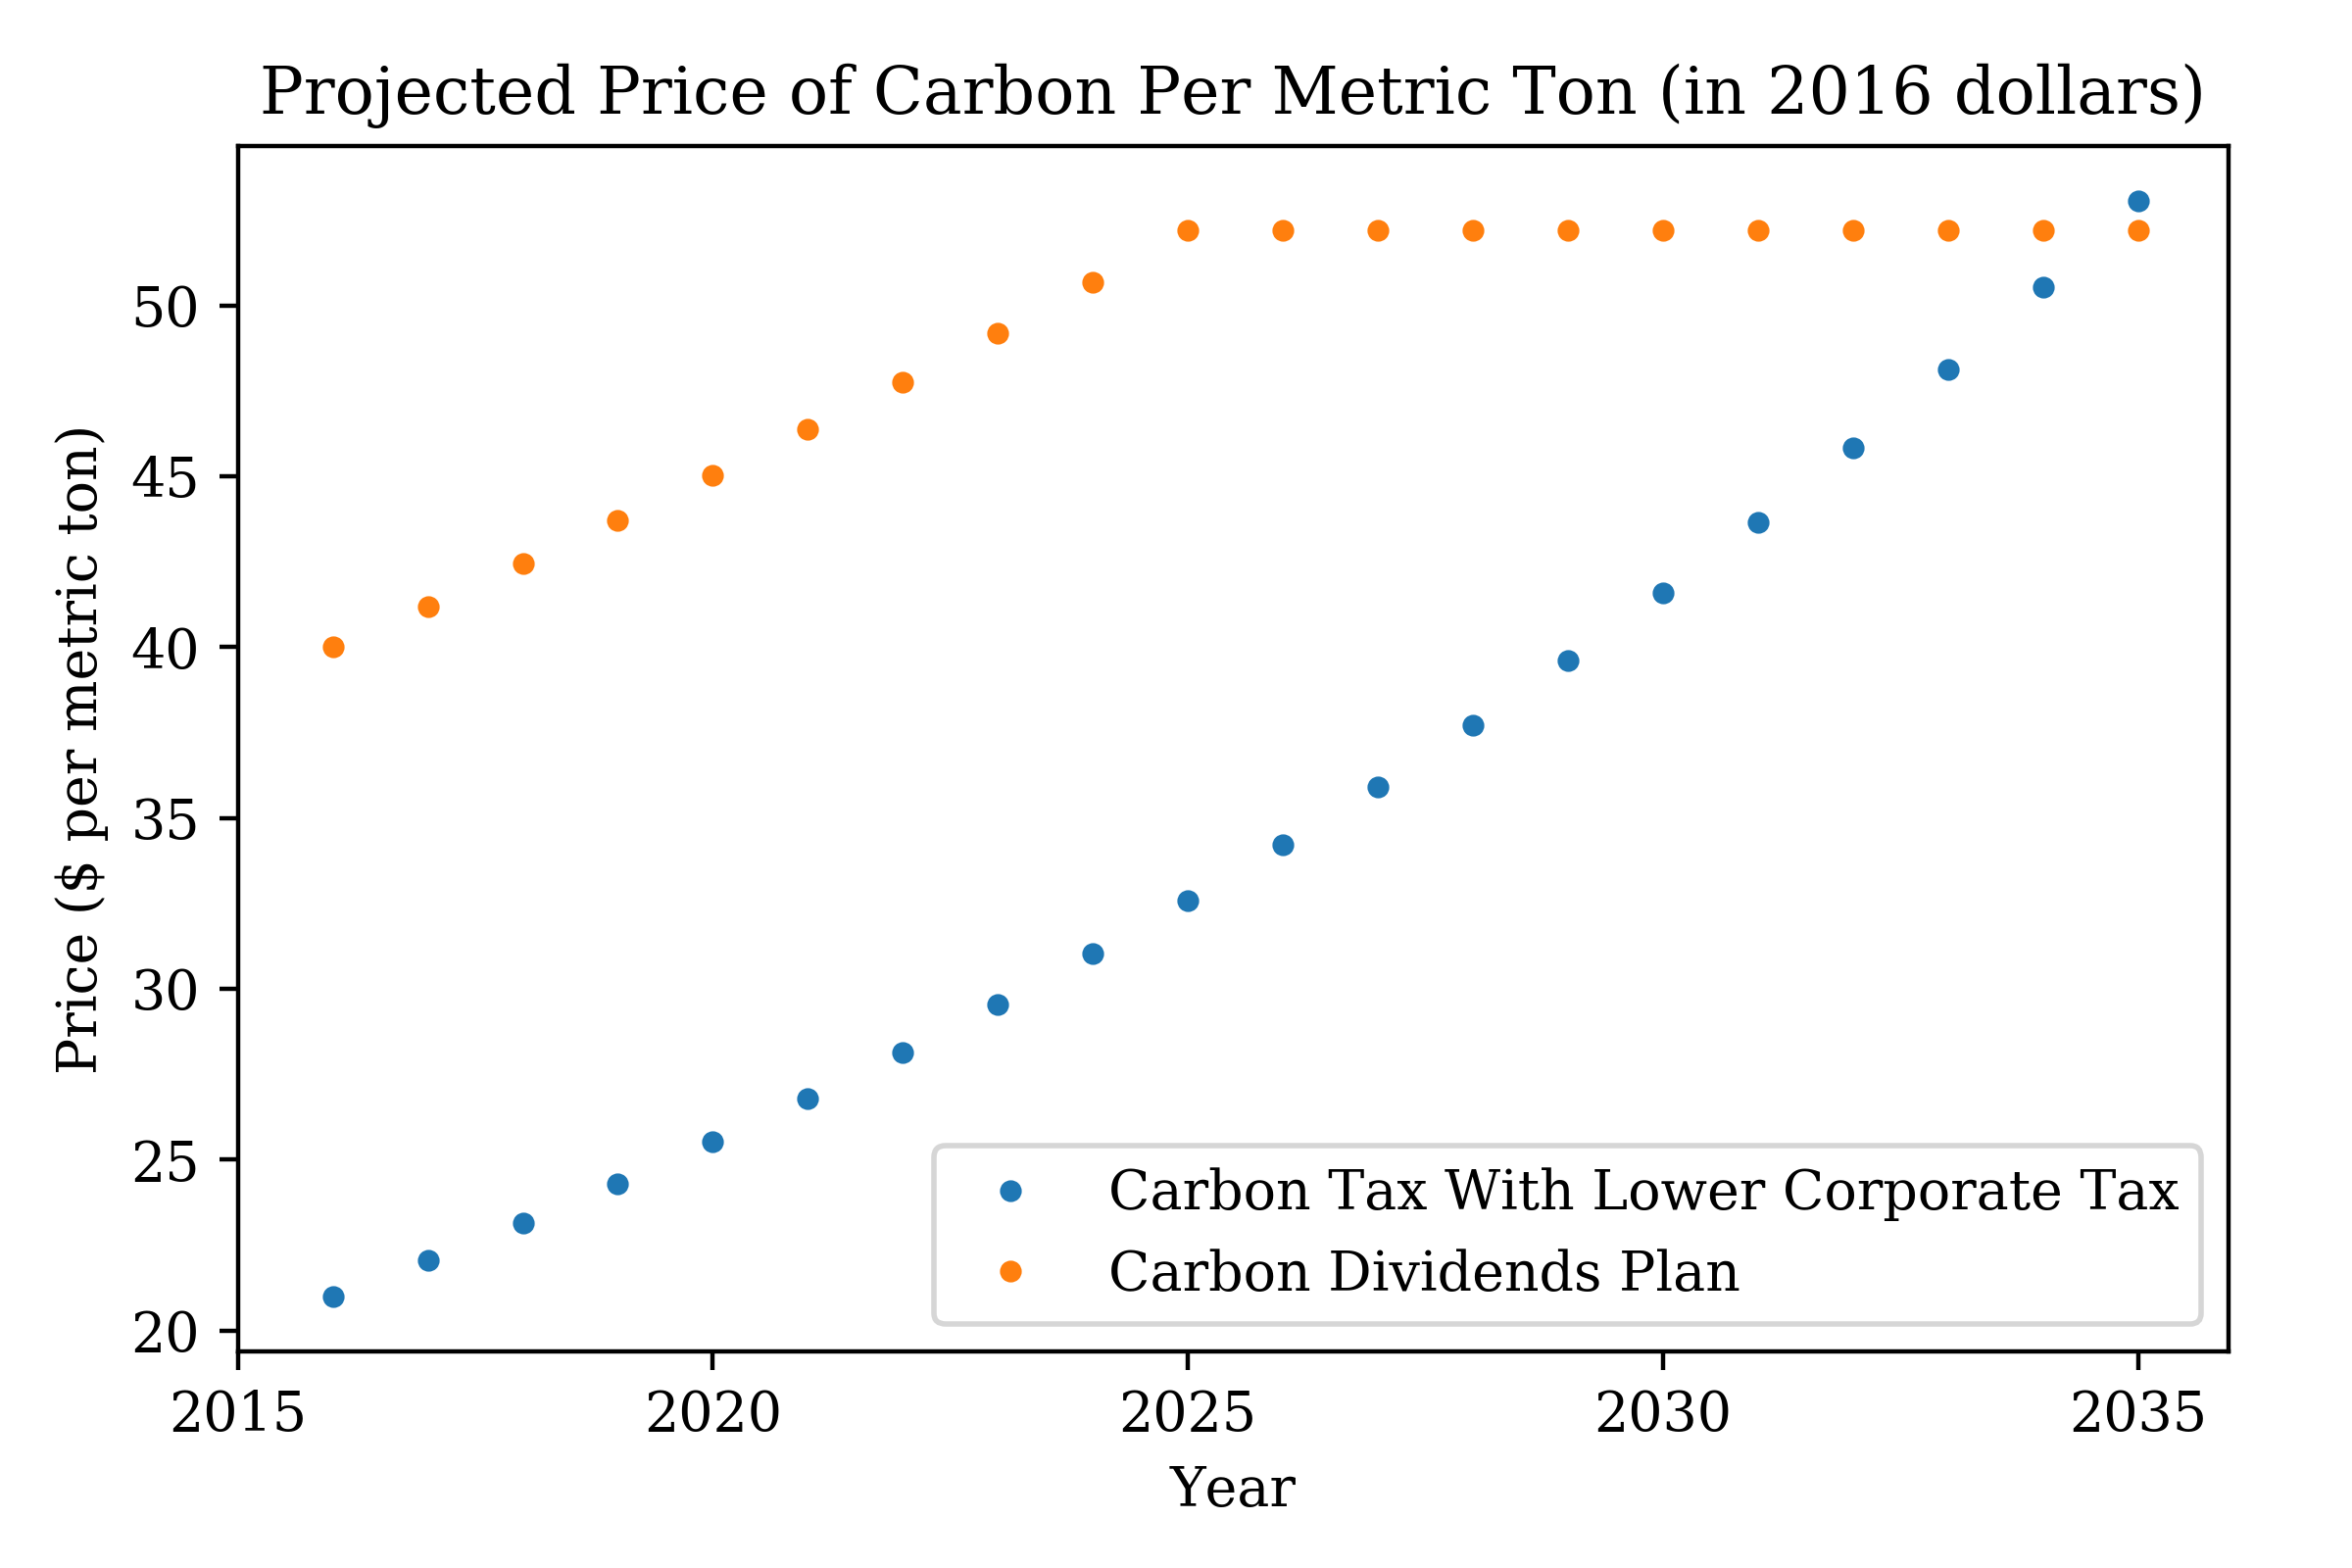 mitigating climate change with a carbon tax: a multi-goal analysis